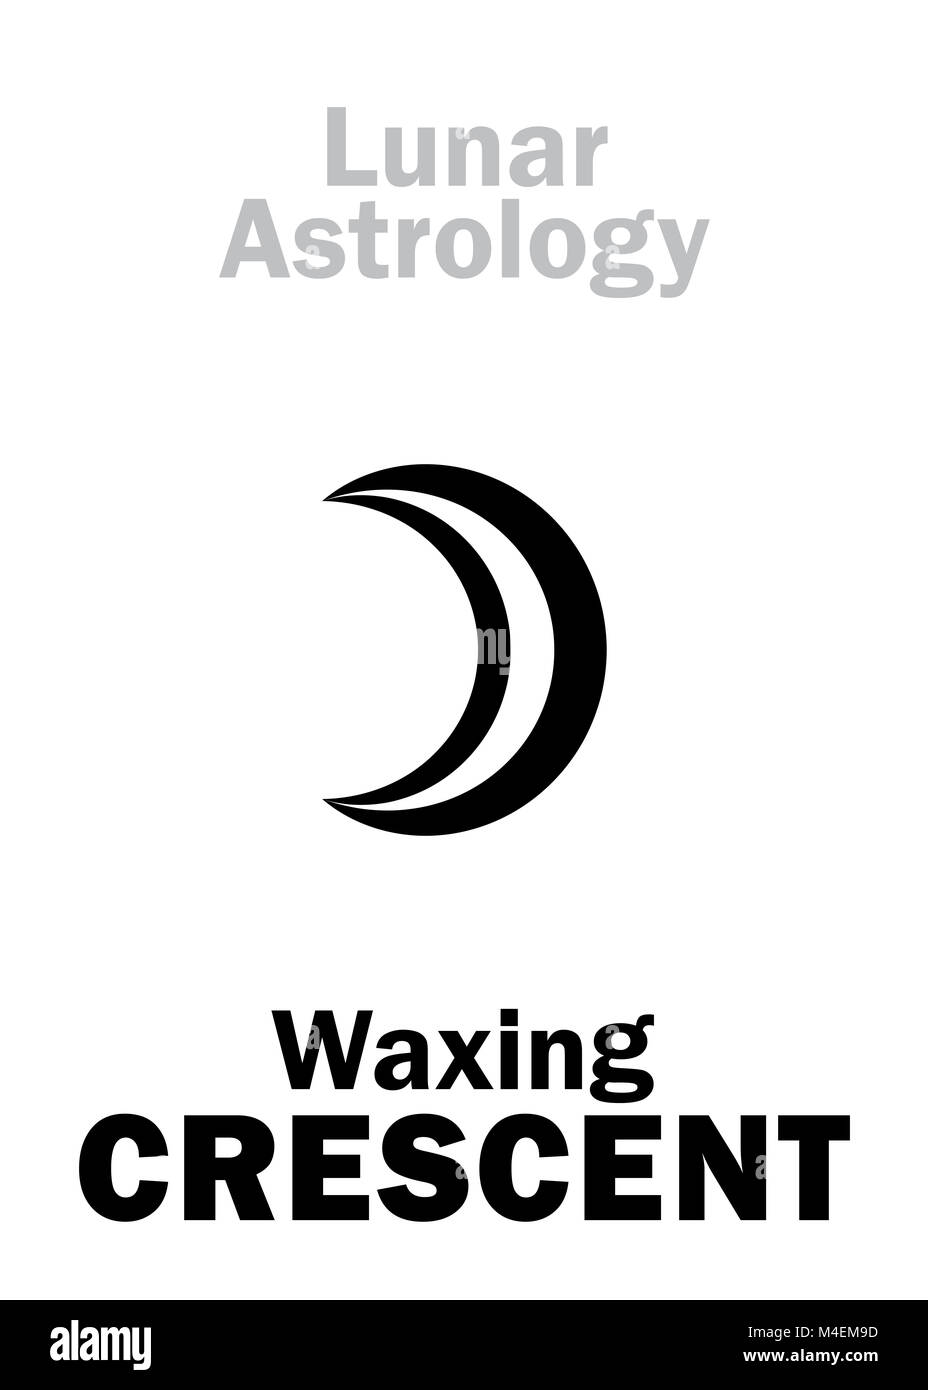 Crescent Moon Cut Out Stock Images & Pictures - Alamy